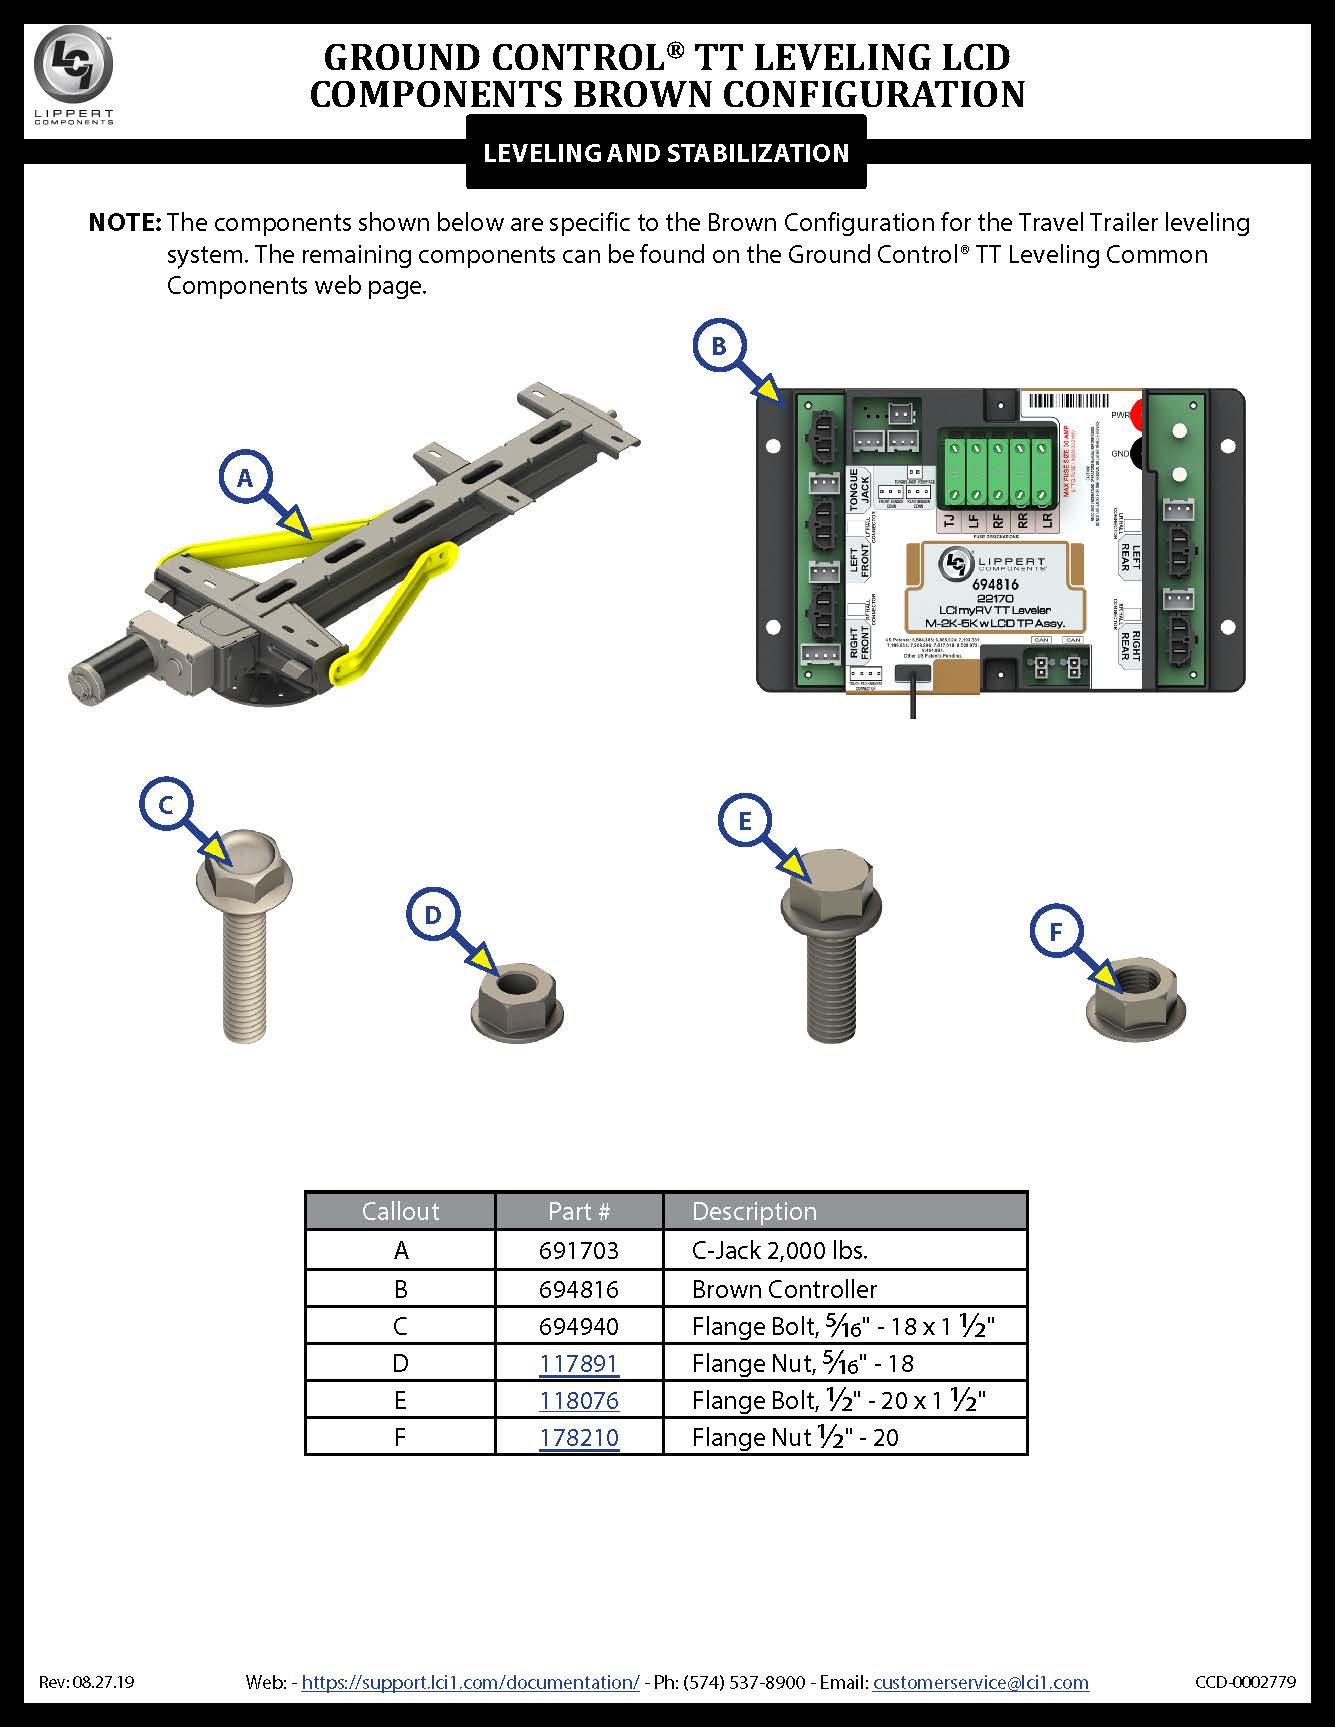 Ground Control® TT Leveling LCD Brown Configuration Components